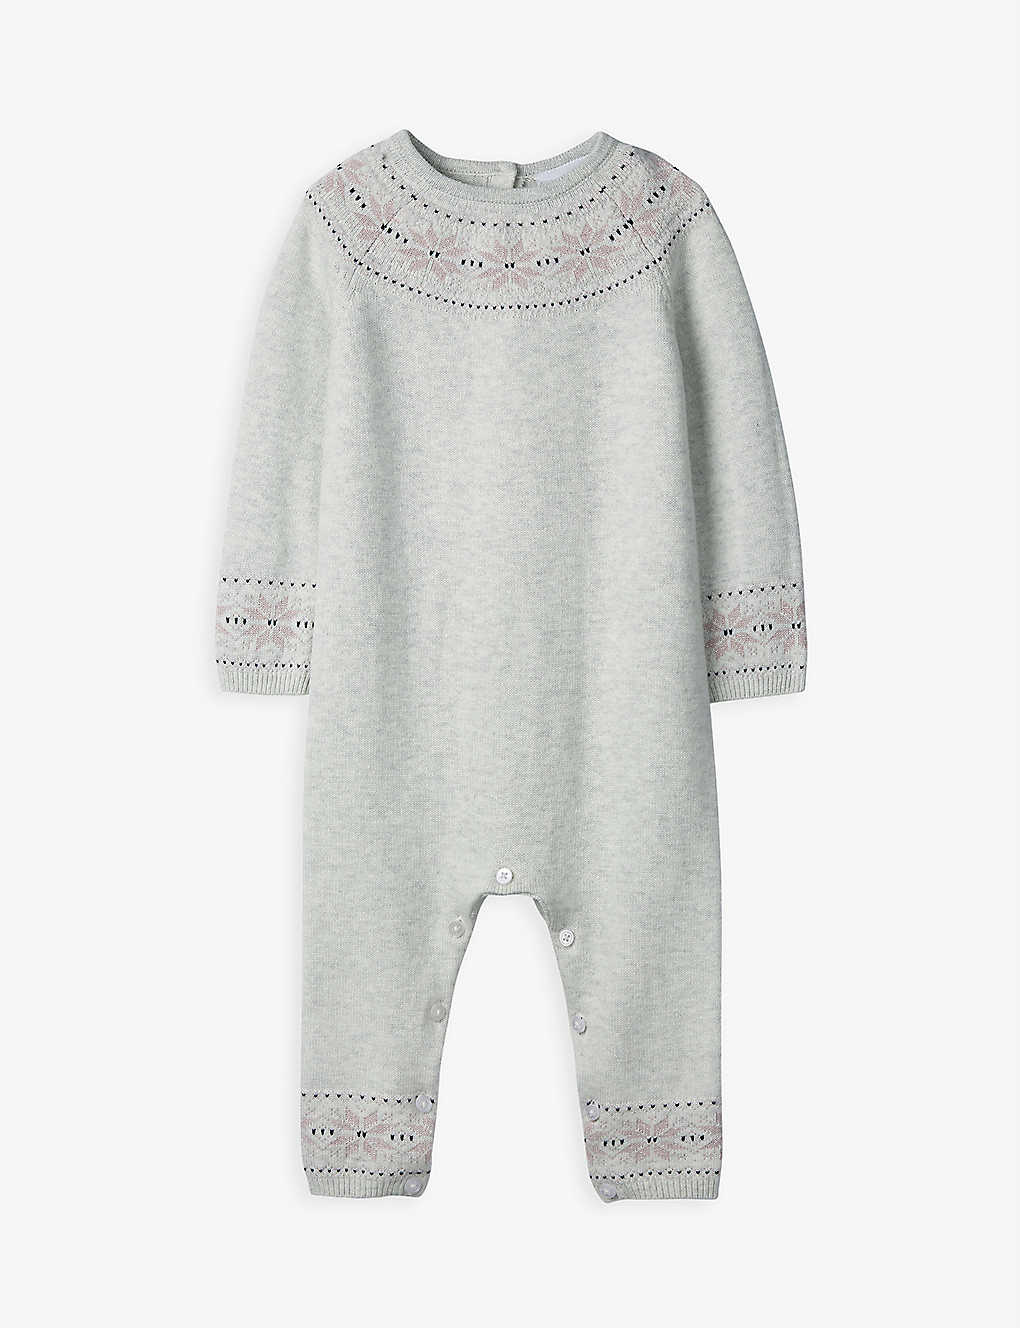 THE LITTLE WHITE COMPANY: Fair Isle knitted cotton-blend romper 0-12 months